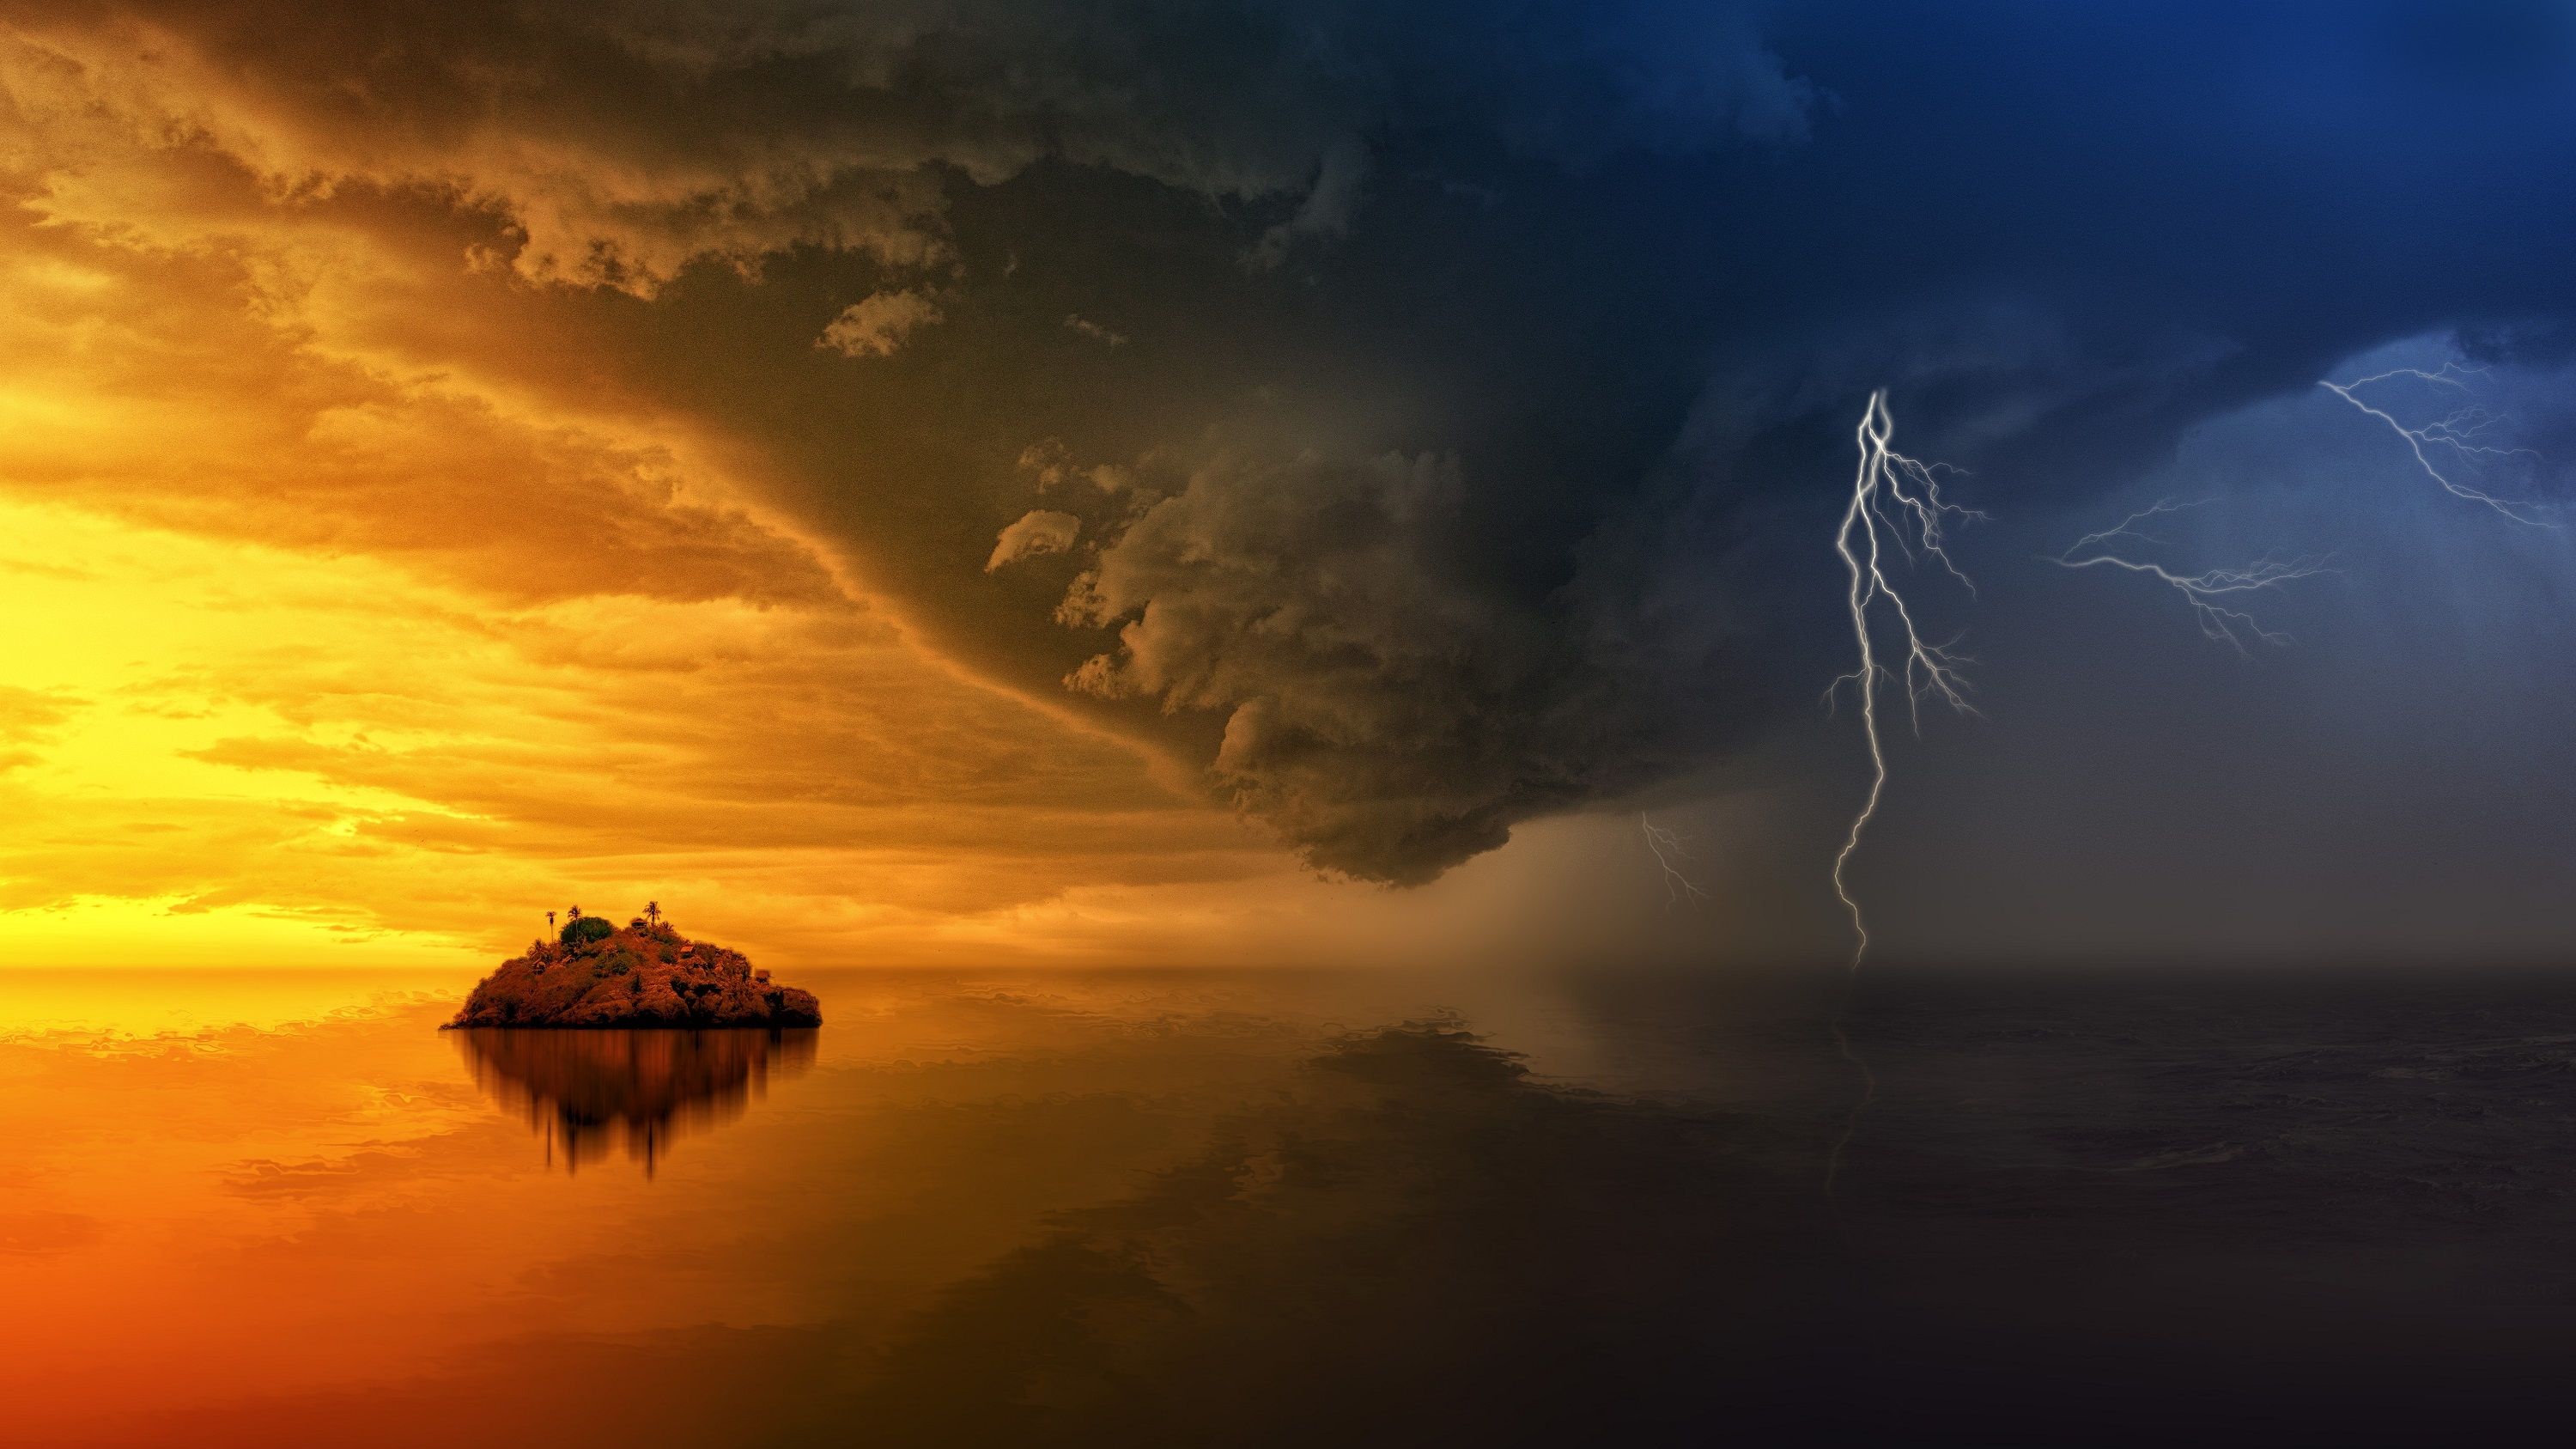 island-during-golden-hour-and-upcoming-storm-1118873 (Johannes Plenio from Pexels)